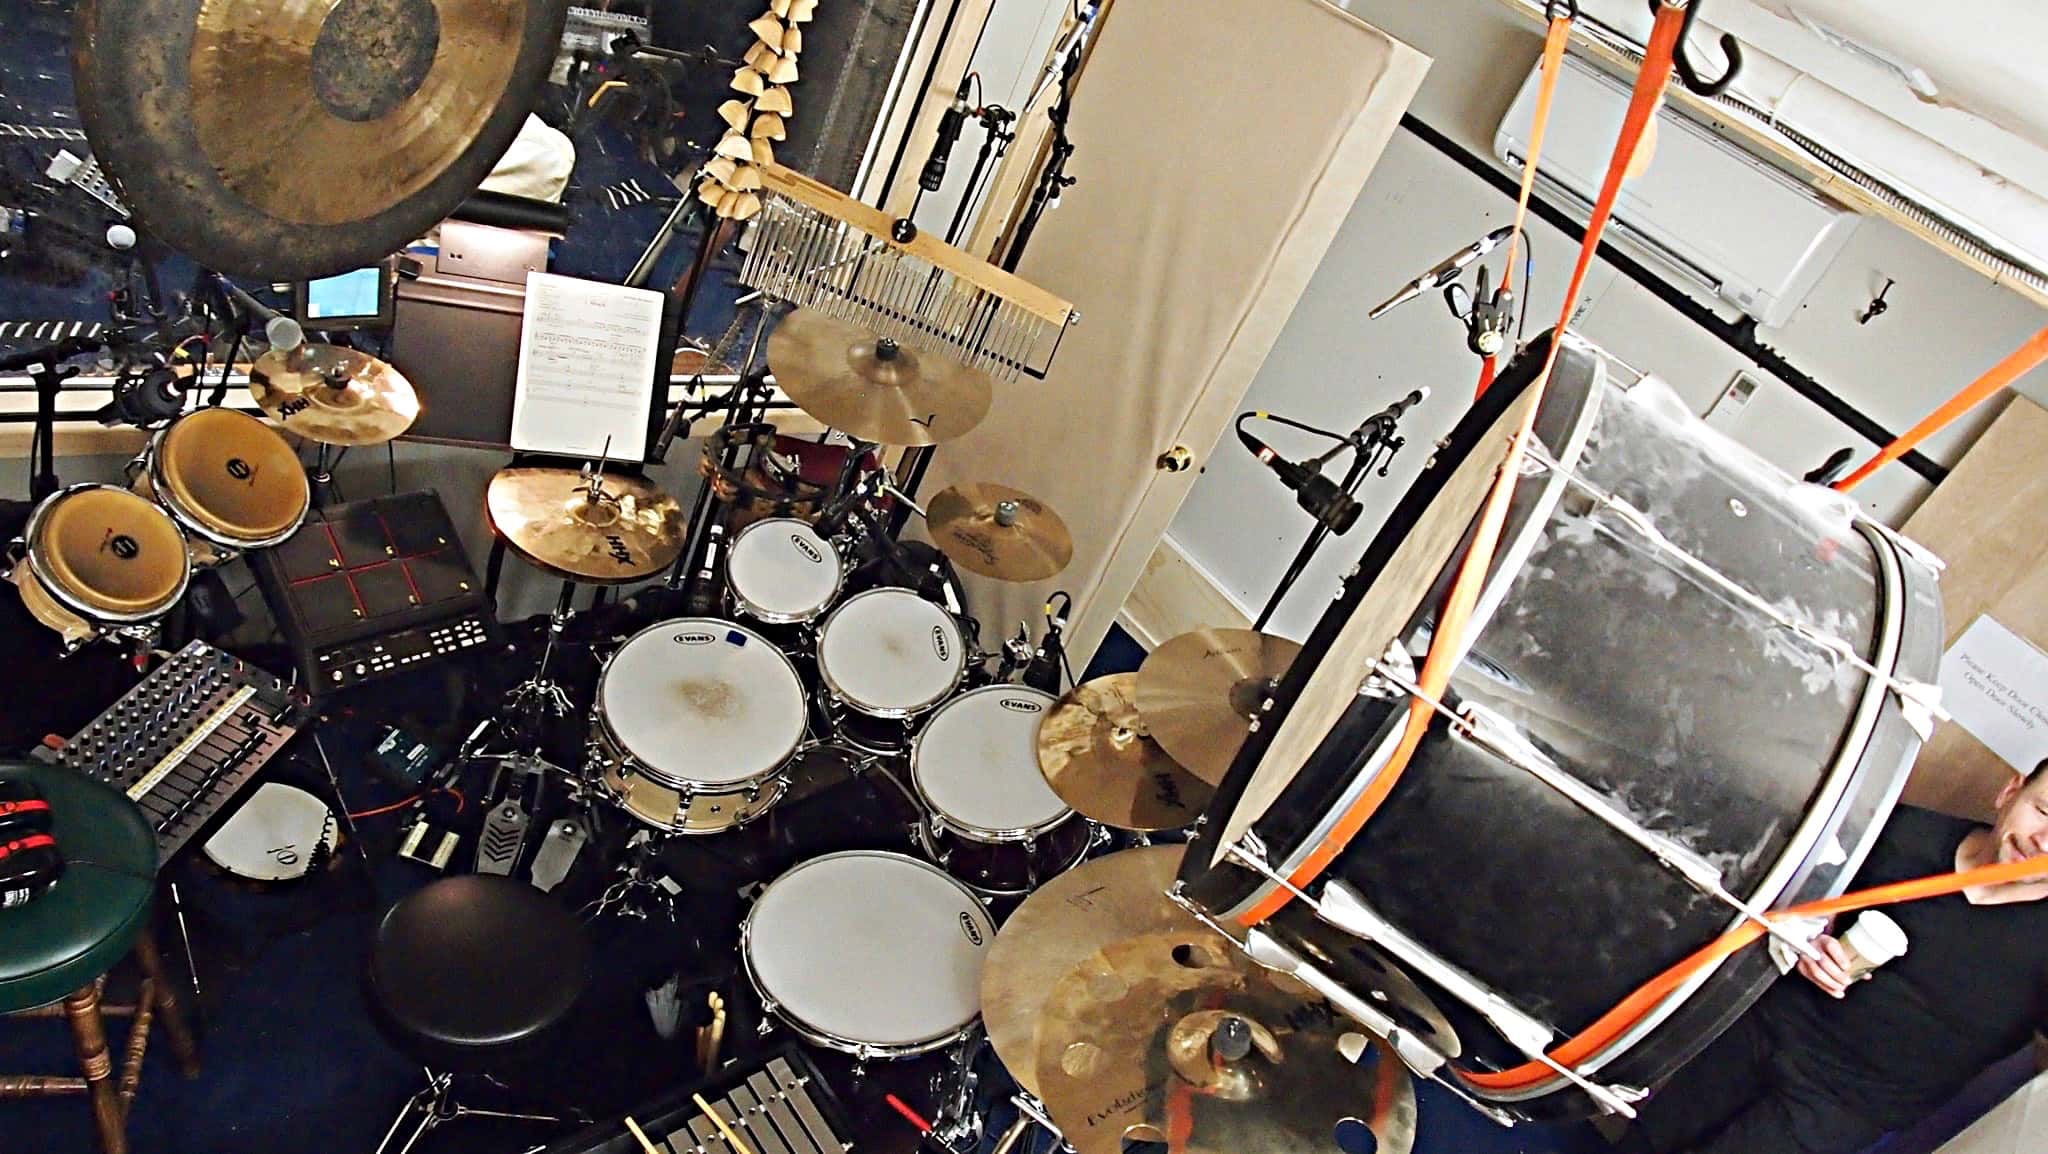 Howard Joines' setup for the Broadway production of Matilda at the Shubert Theater.